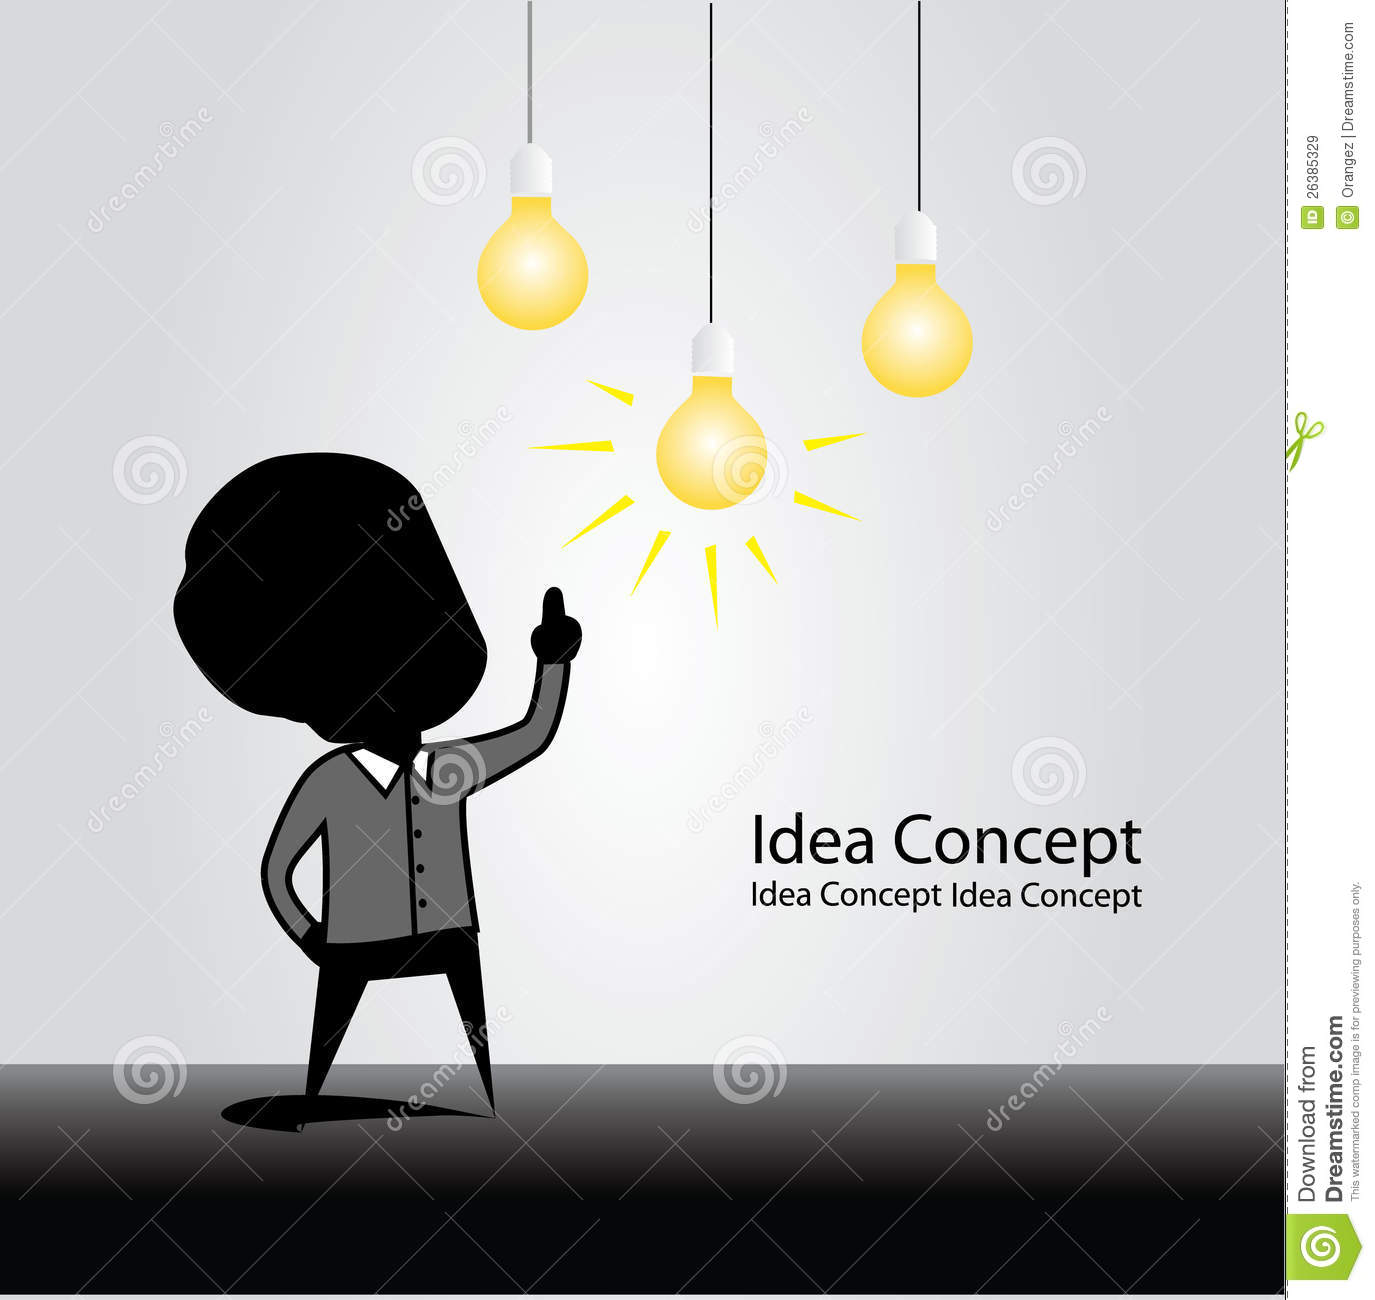 idea concept stock illustration illustration of drawing 26385329